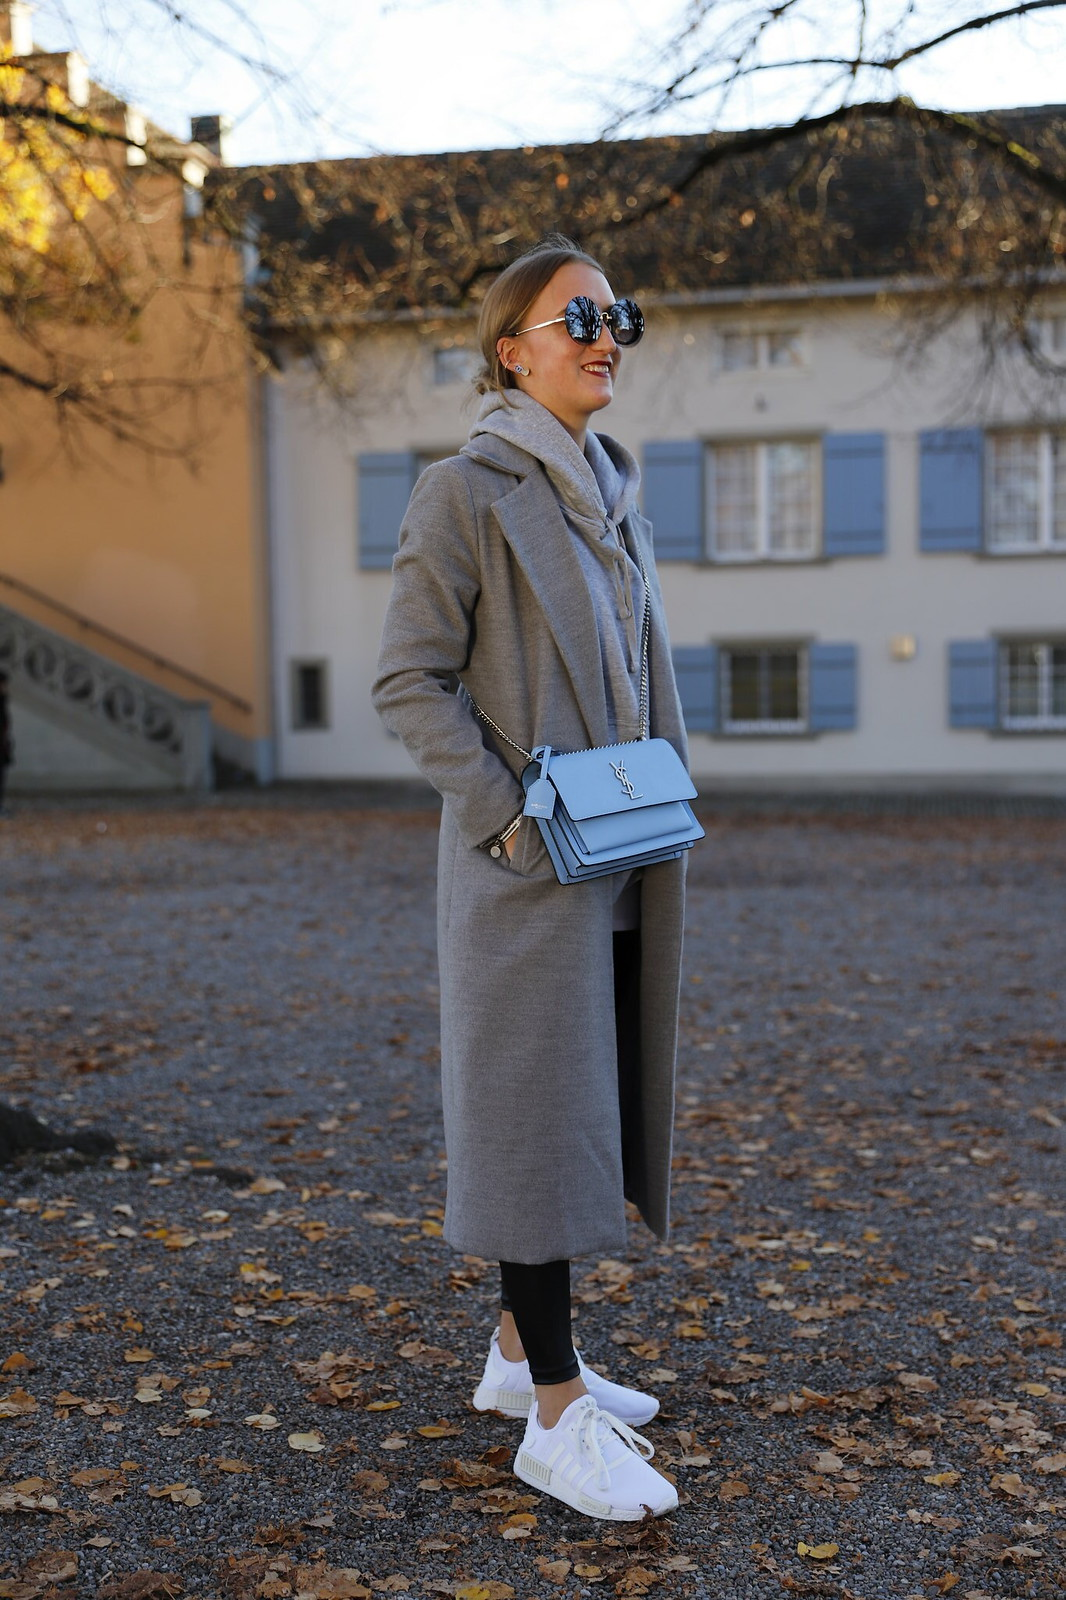 ysl-bag-and-sneakers-outfit-wiebkembg